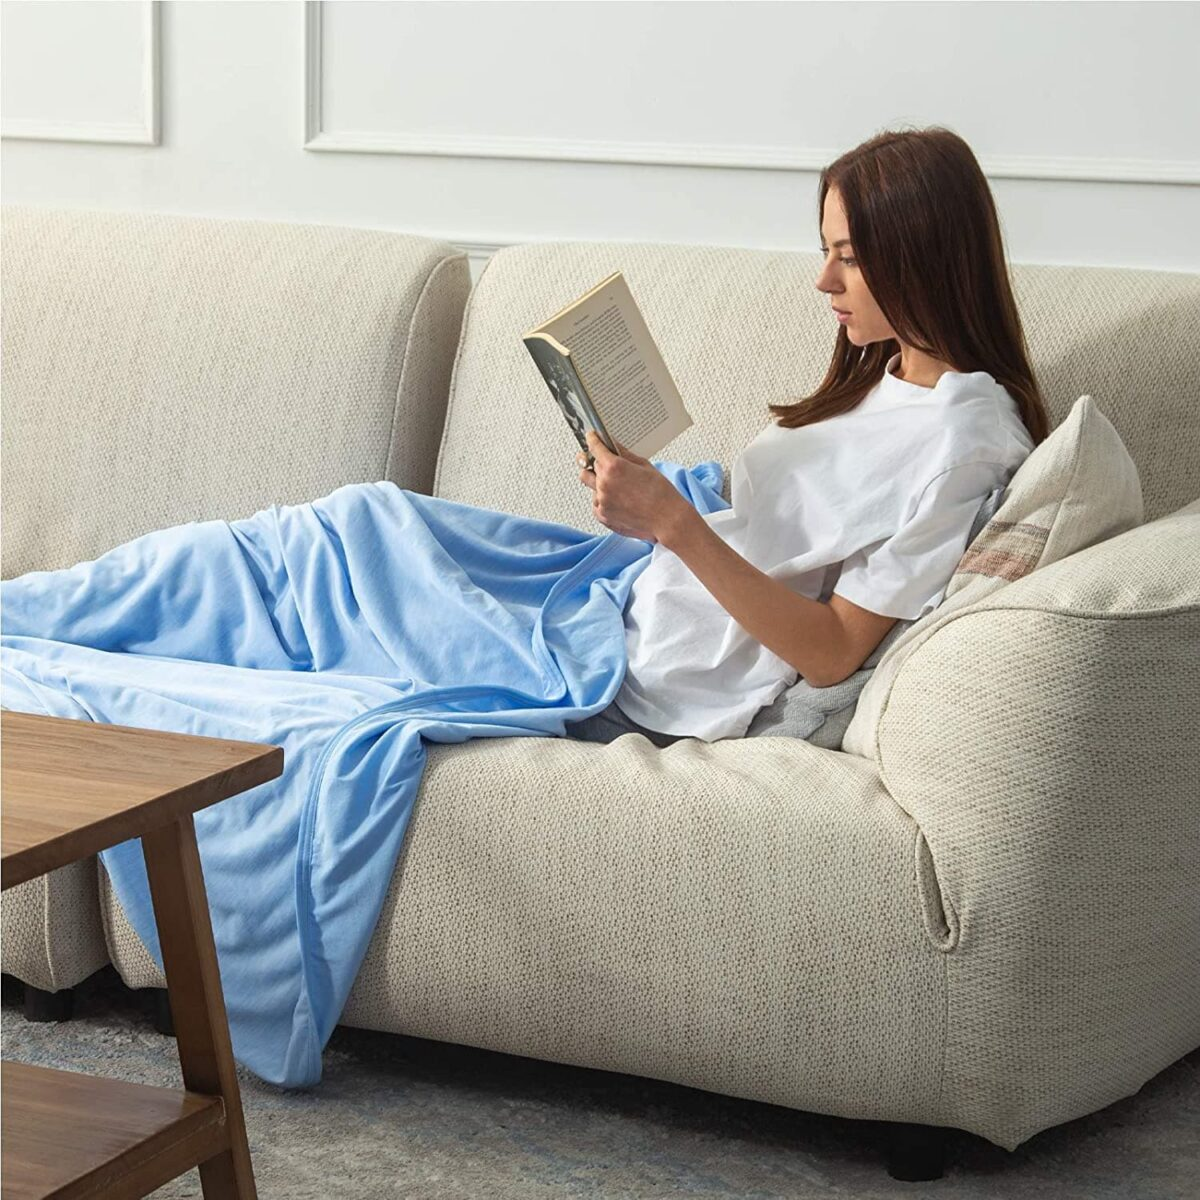 woman on couch reading - 5 Thoughtful Mothers Day Gifts For A New Mom